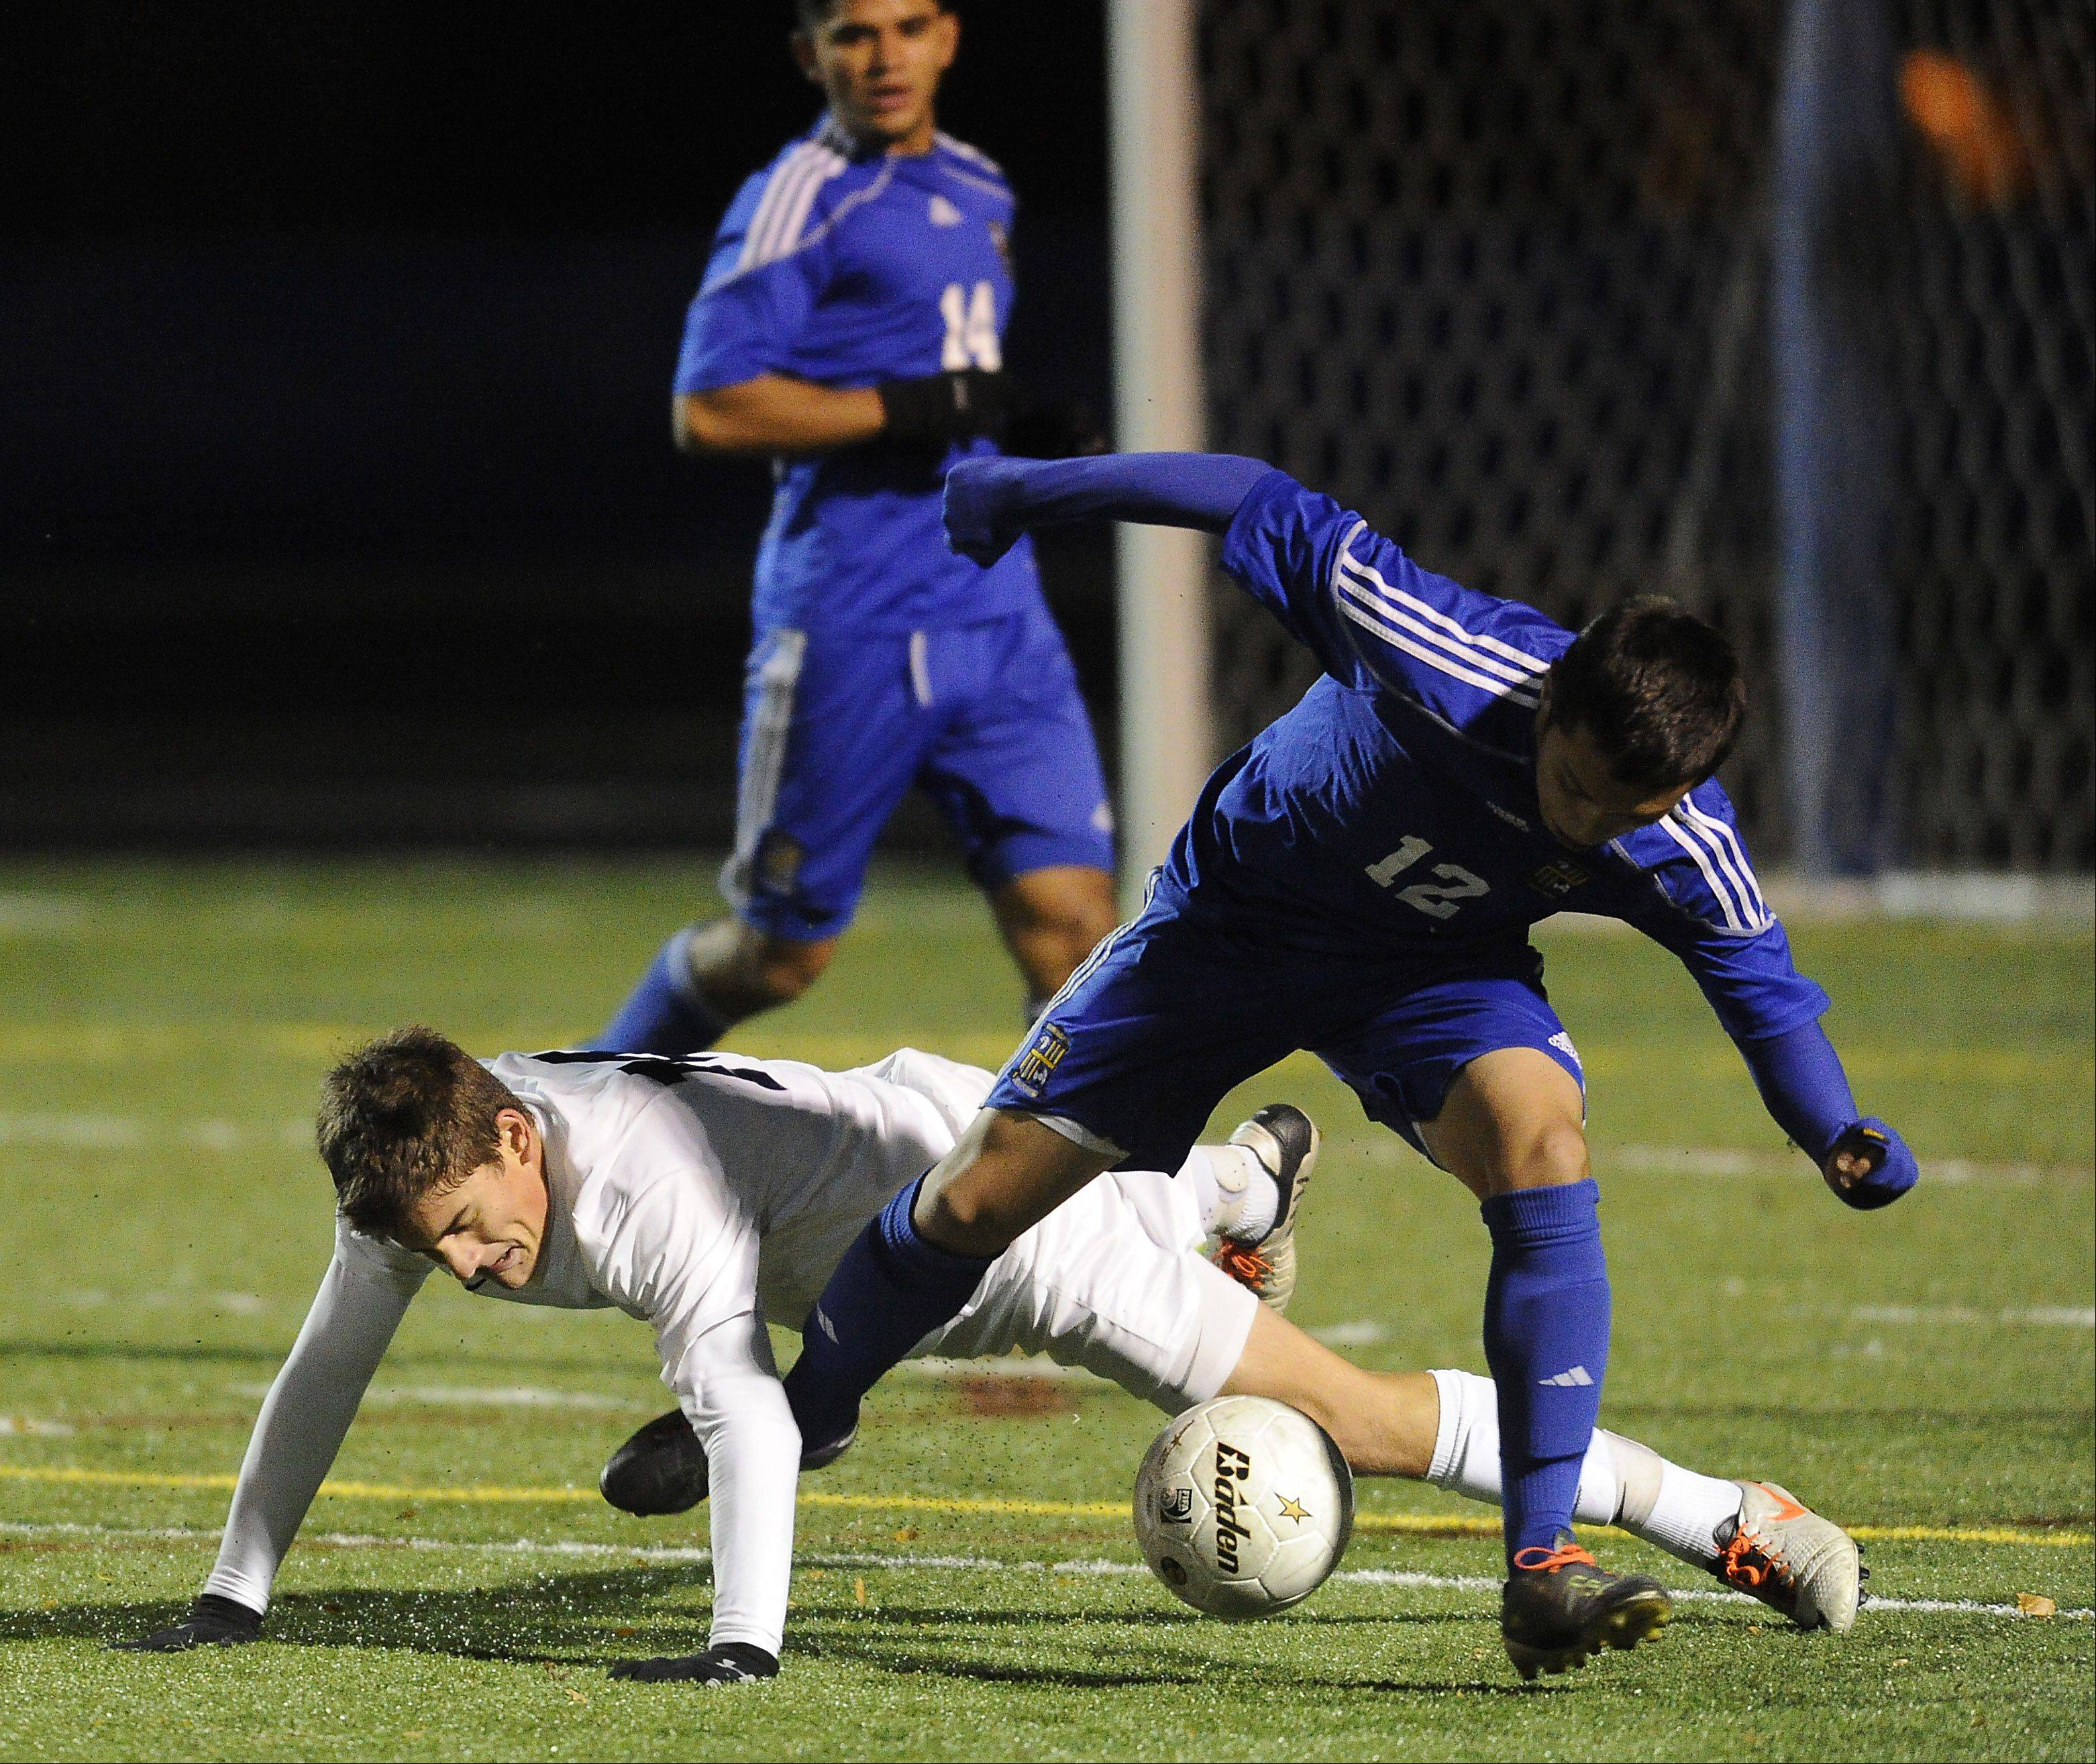 Wheeling's Alfredo Rocha gets tripped up by Lake Park's Giovanni Ciaccio in the second period of the Class 3A boys soccer state semifinals at Hoffman Estates on Friday.